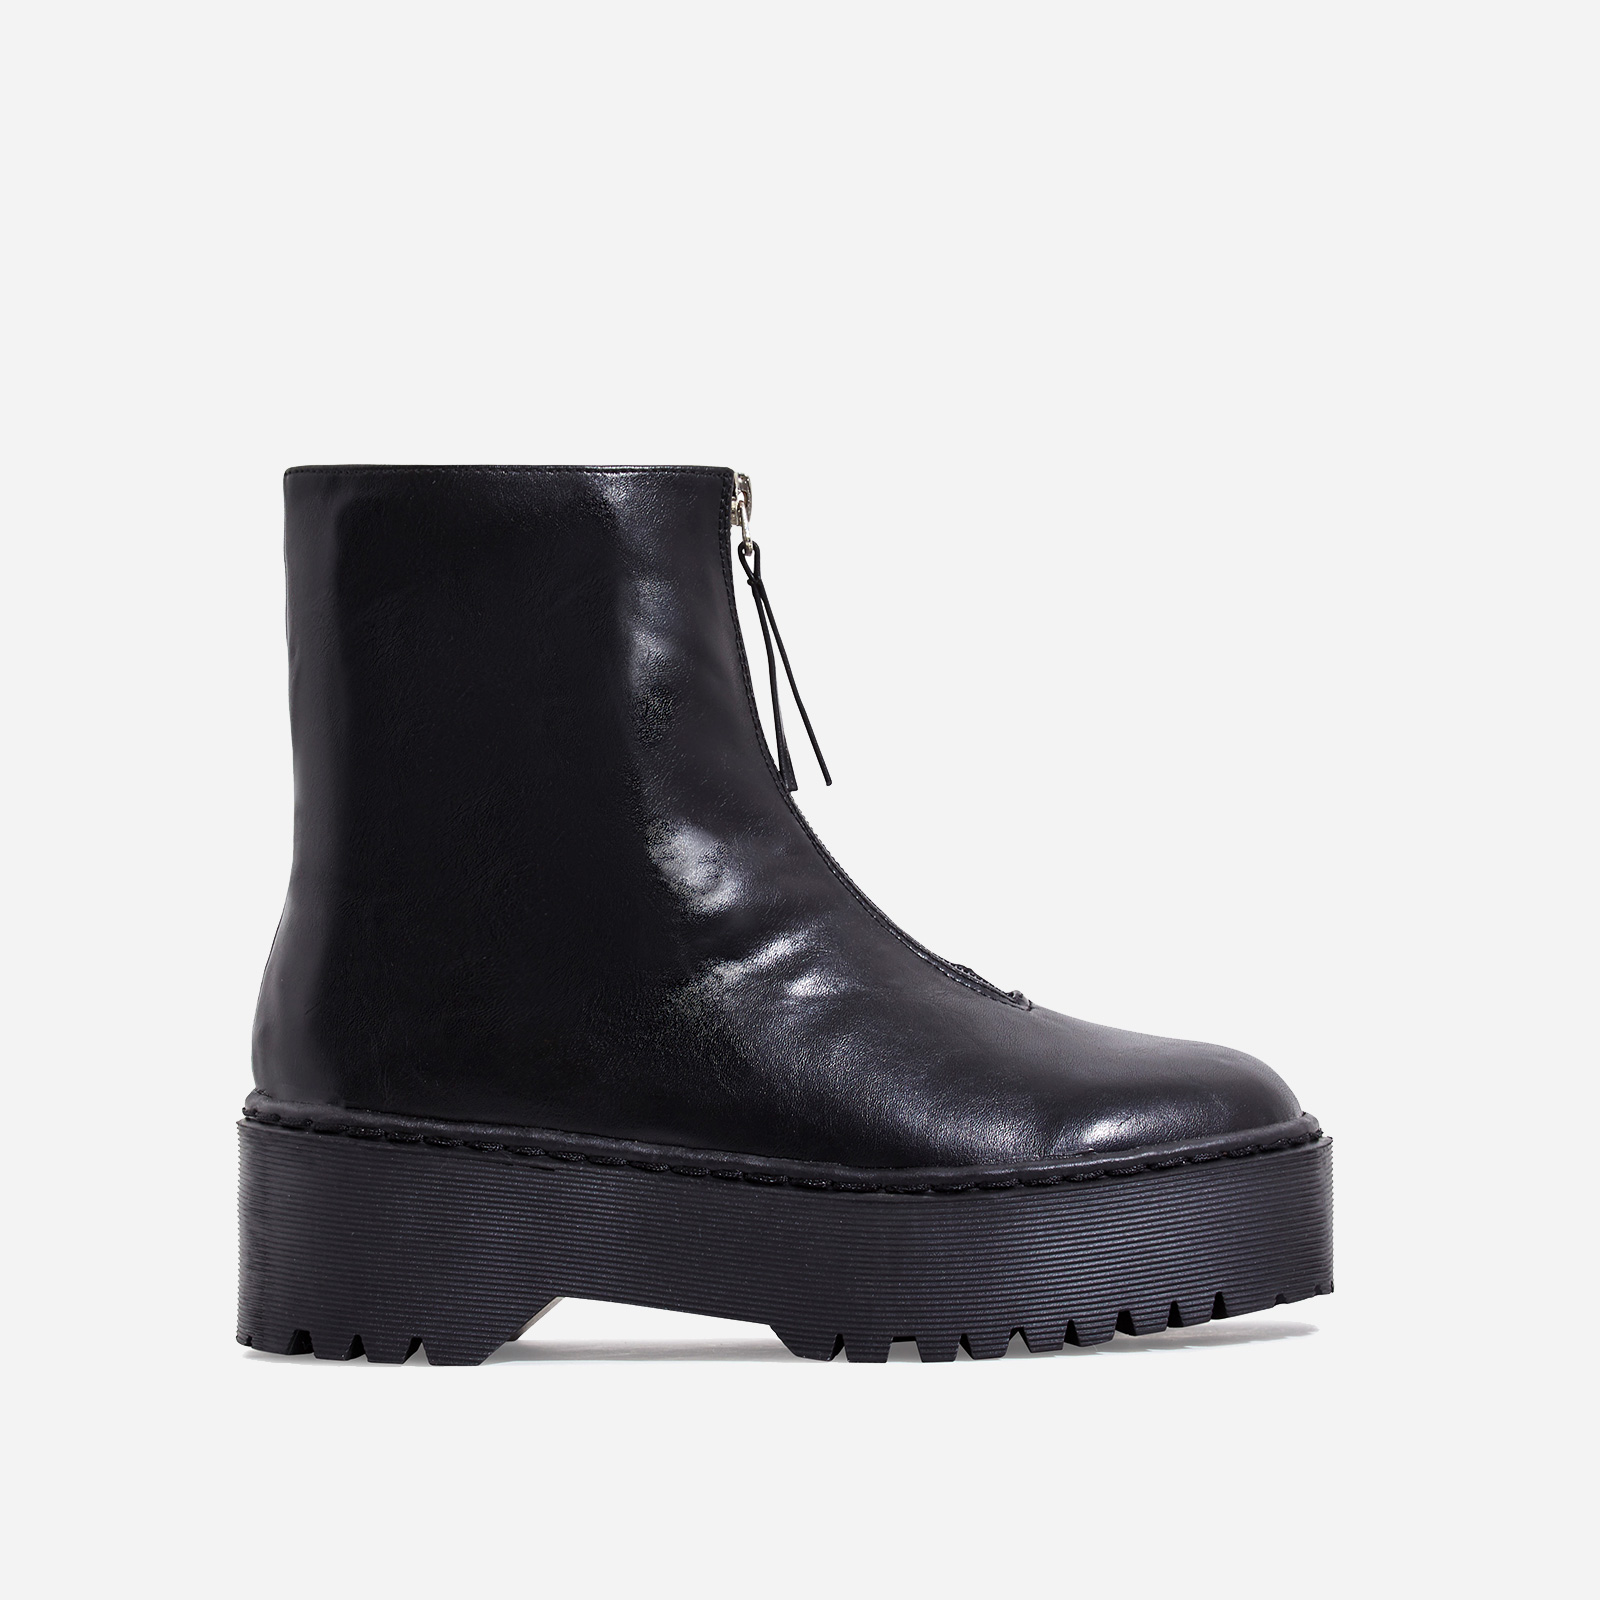 Centre Zip Detail Ankle Biker Boots In Black Faux Leather